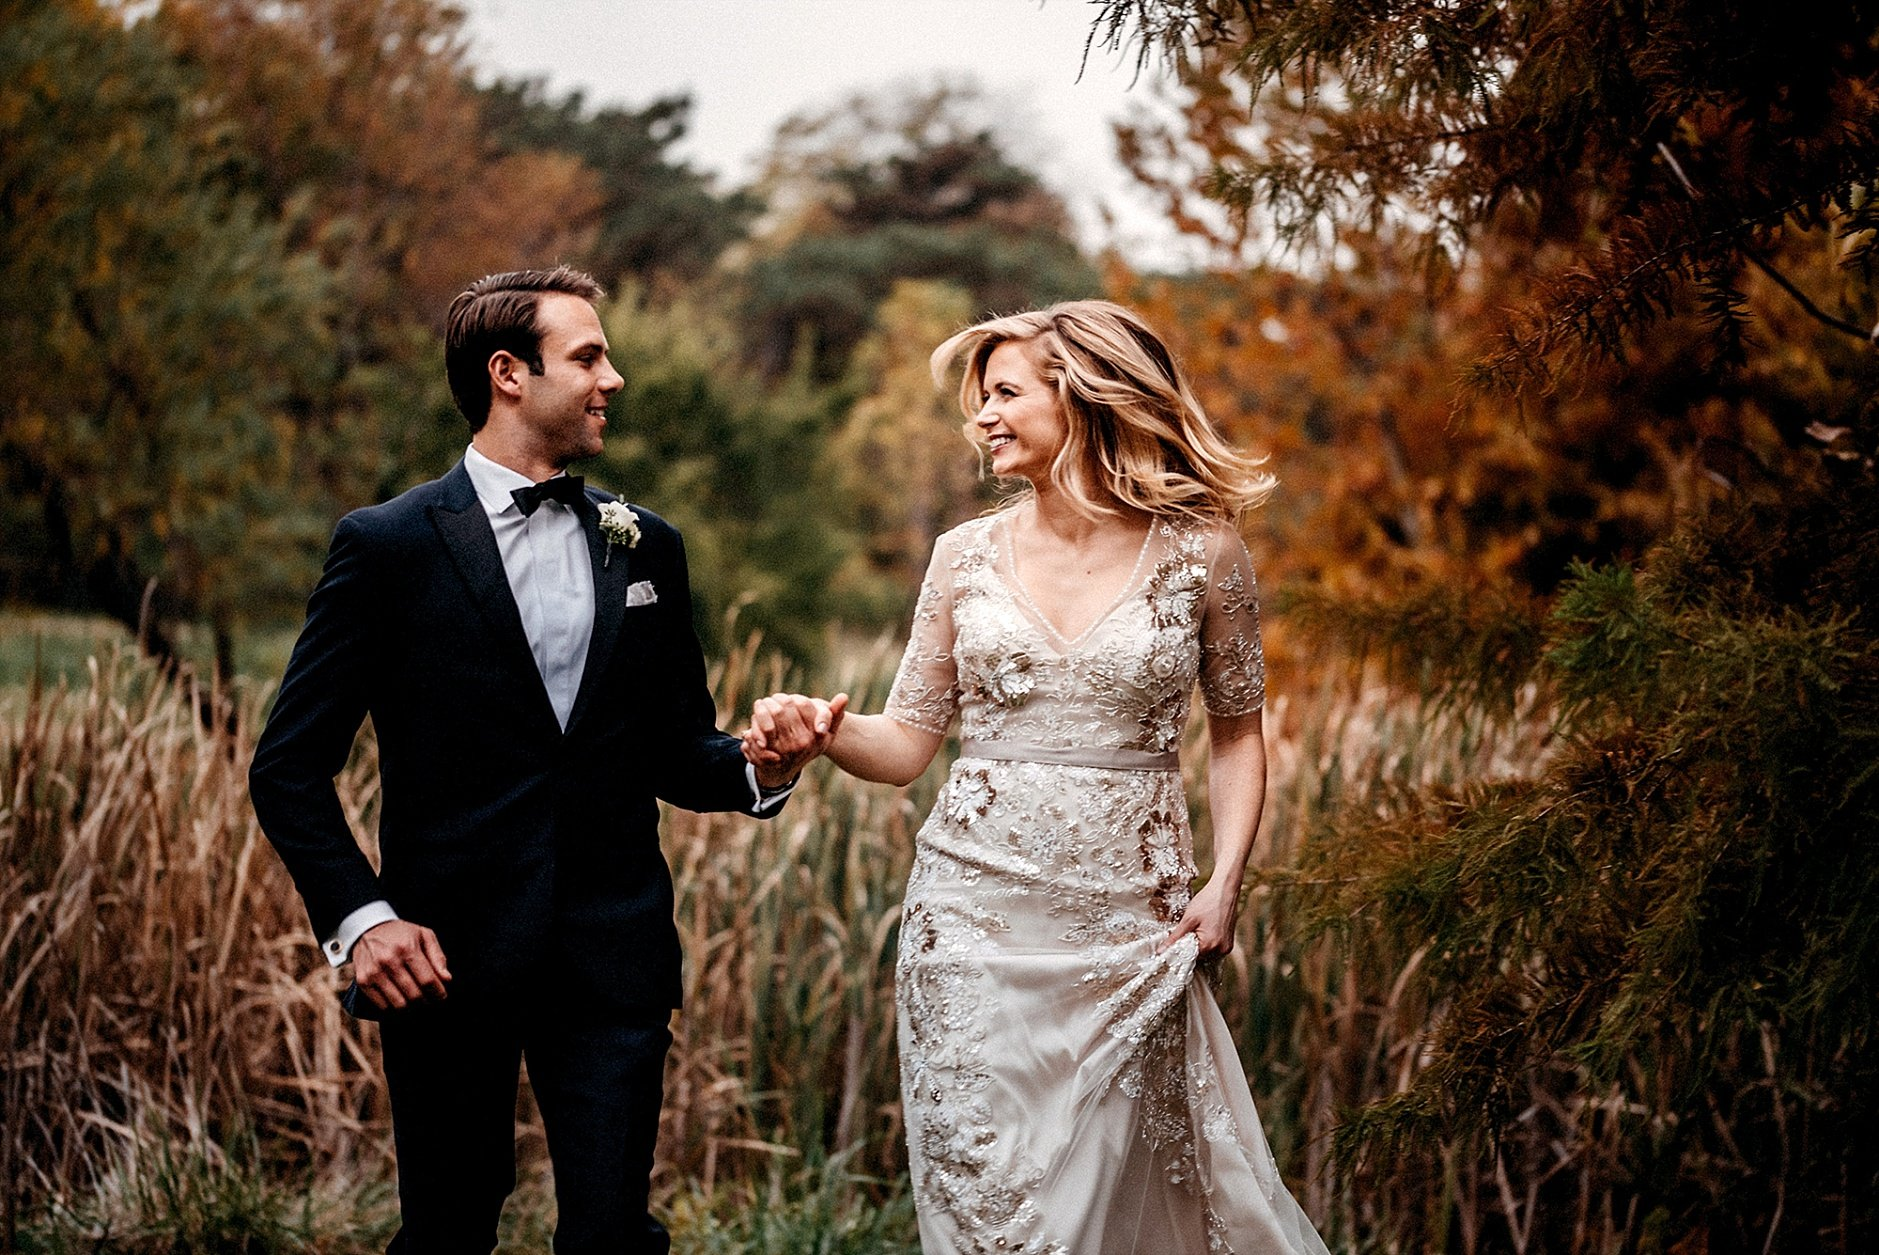 Wedding Photography in St. Louis